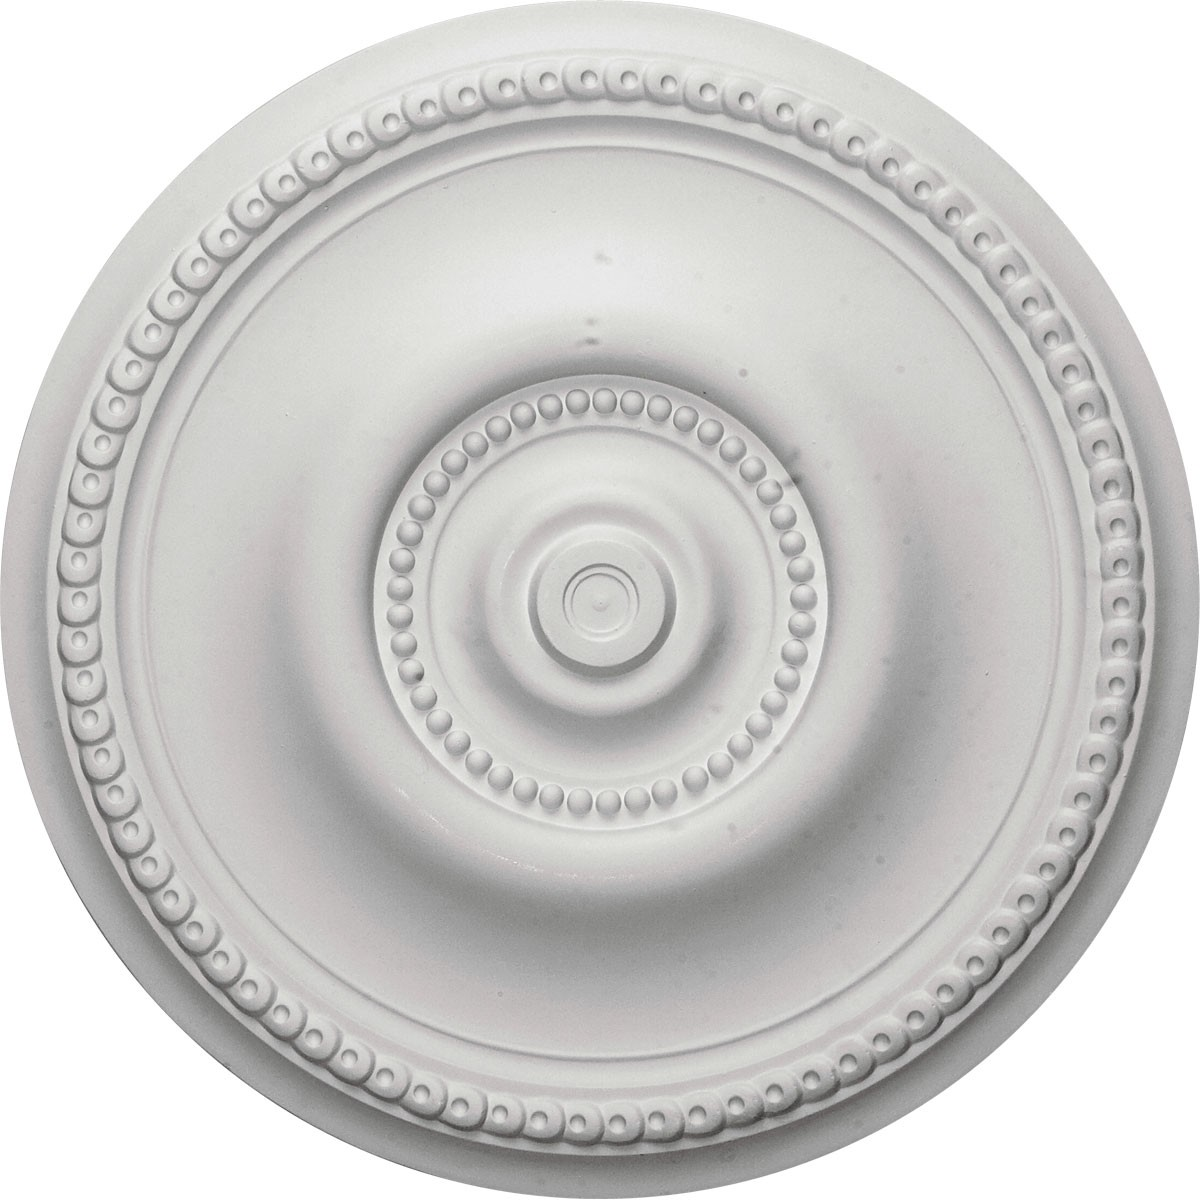 "EM-CM20BE - 20 5/8""OD x 1 3/8""P Raynor Ceiling Medallion (Fits Canopies up to 6"")"